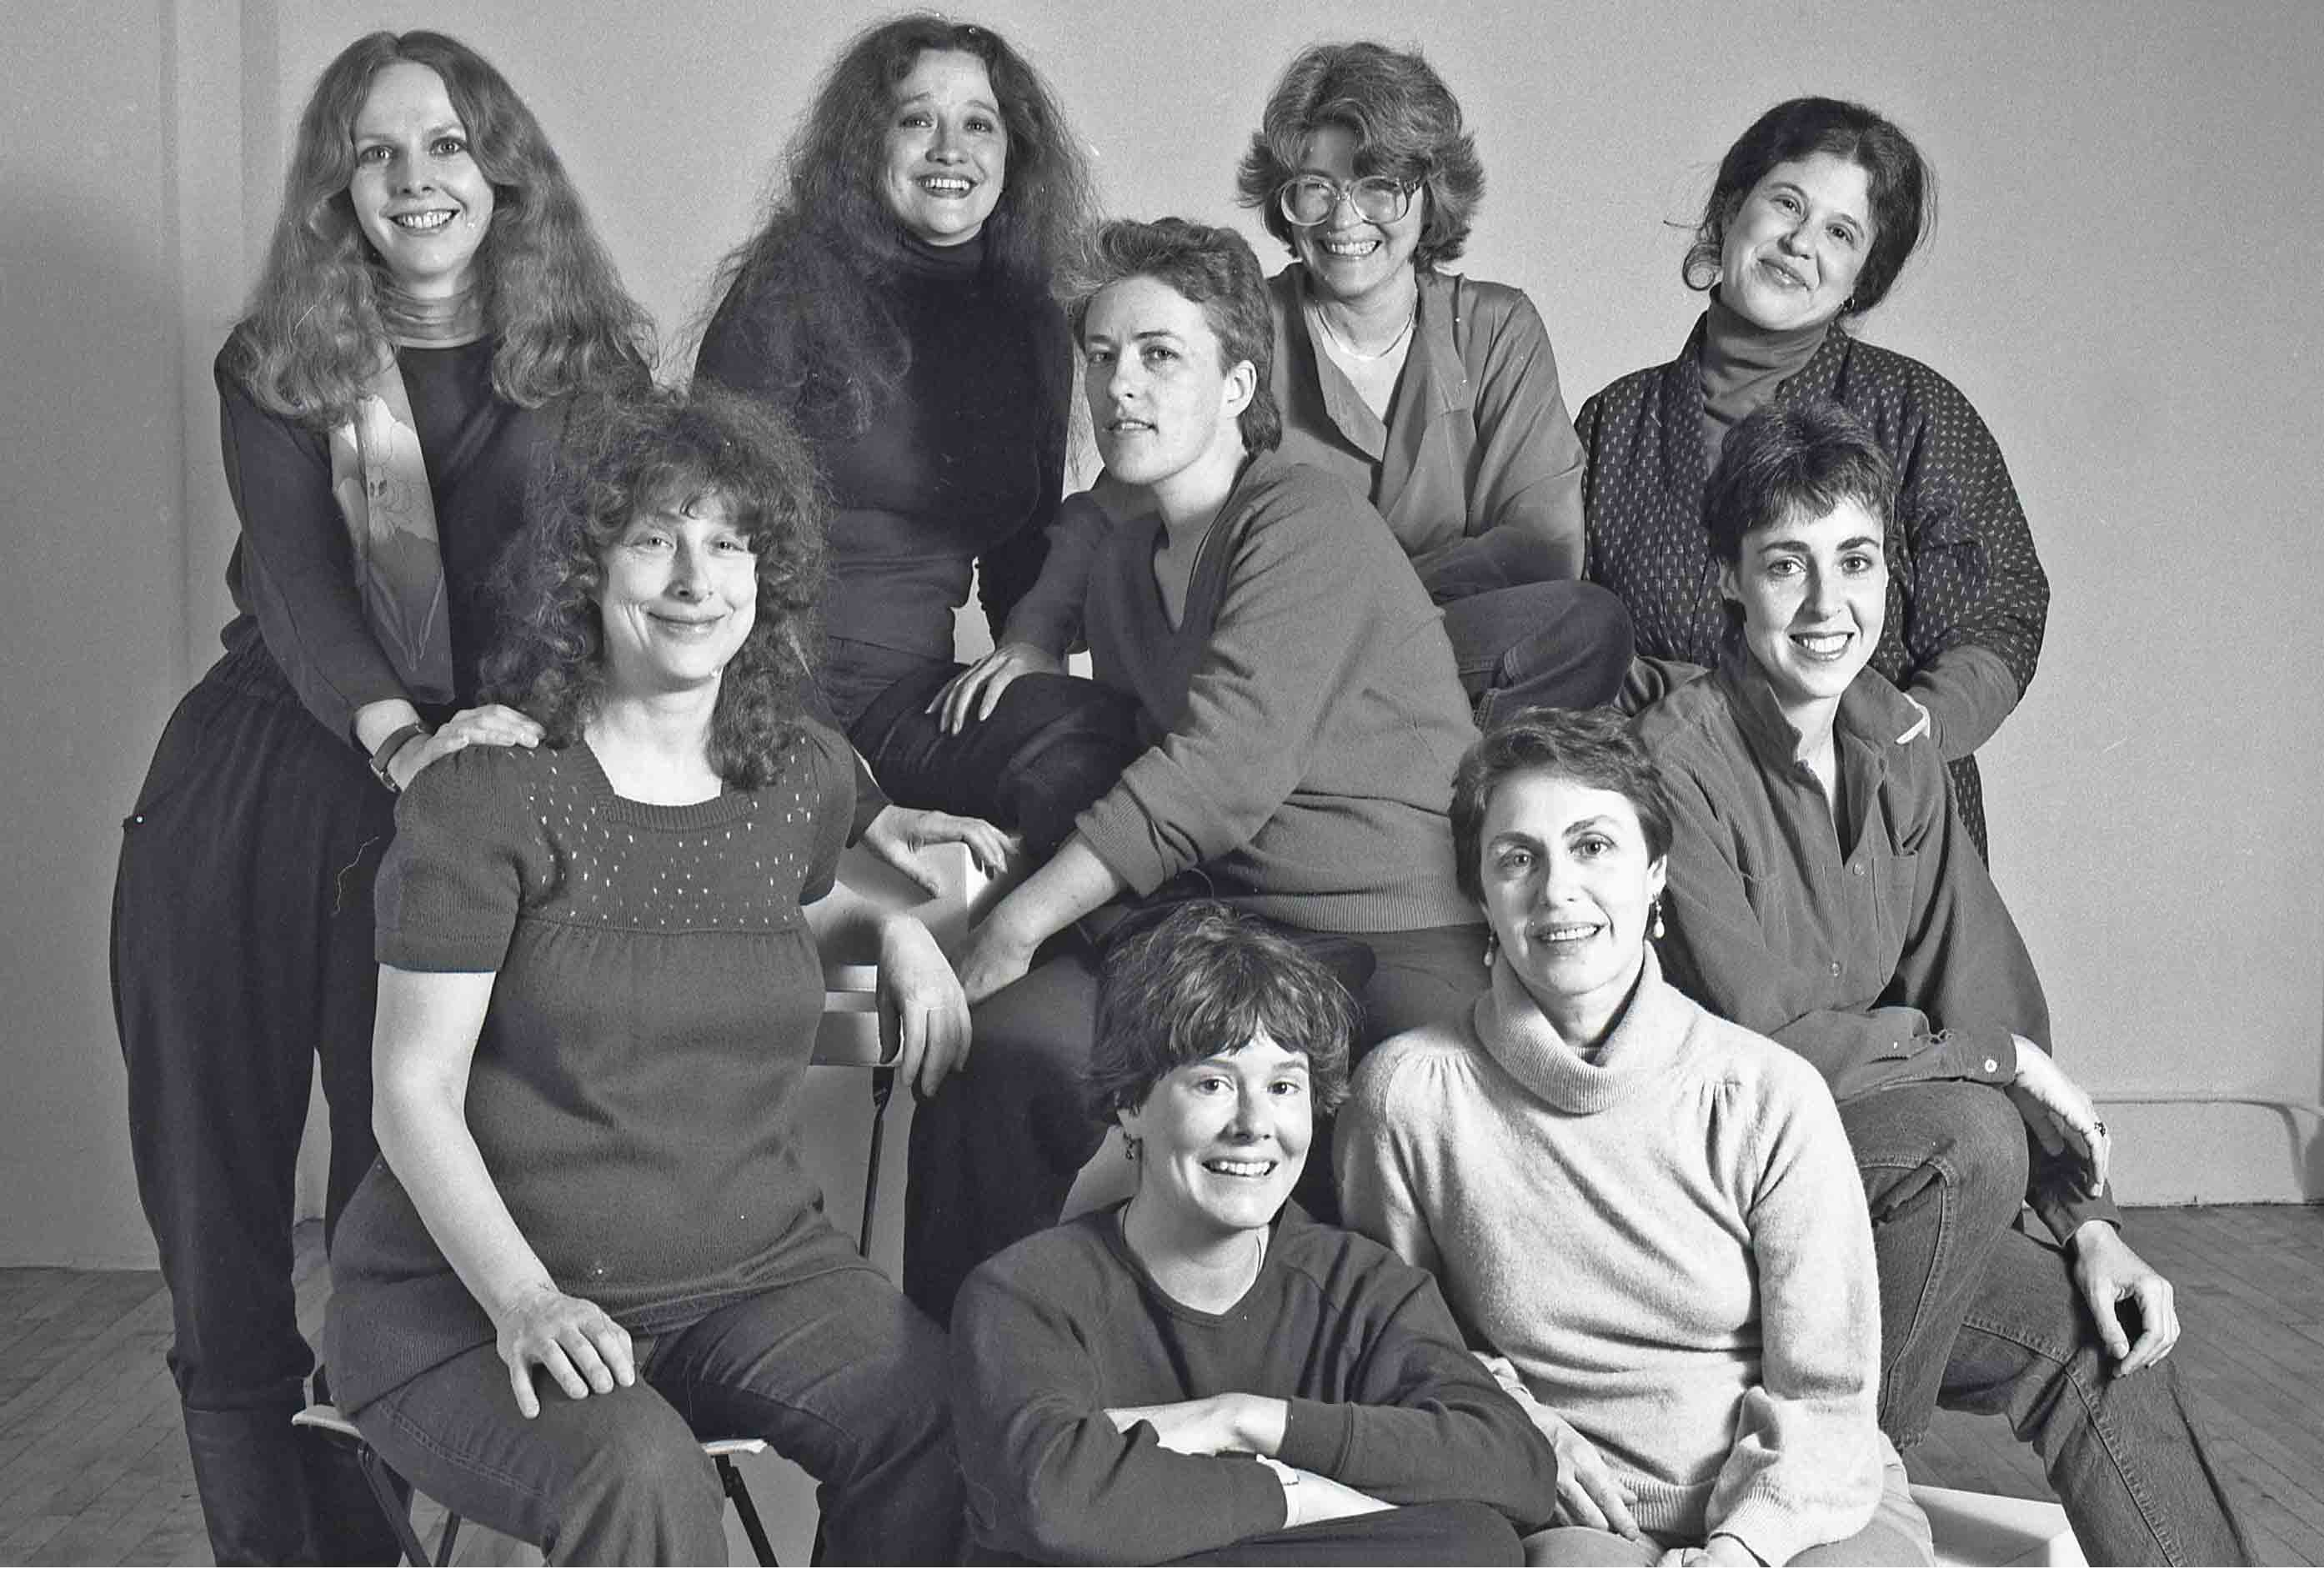 Remembering Ann Snitow, the Feminist Activist Who Embraced Uncertainty